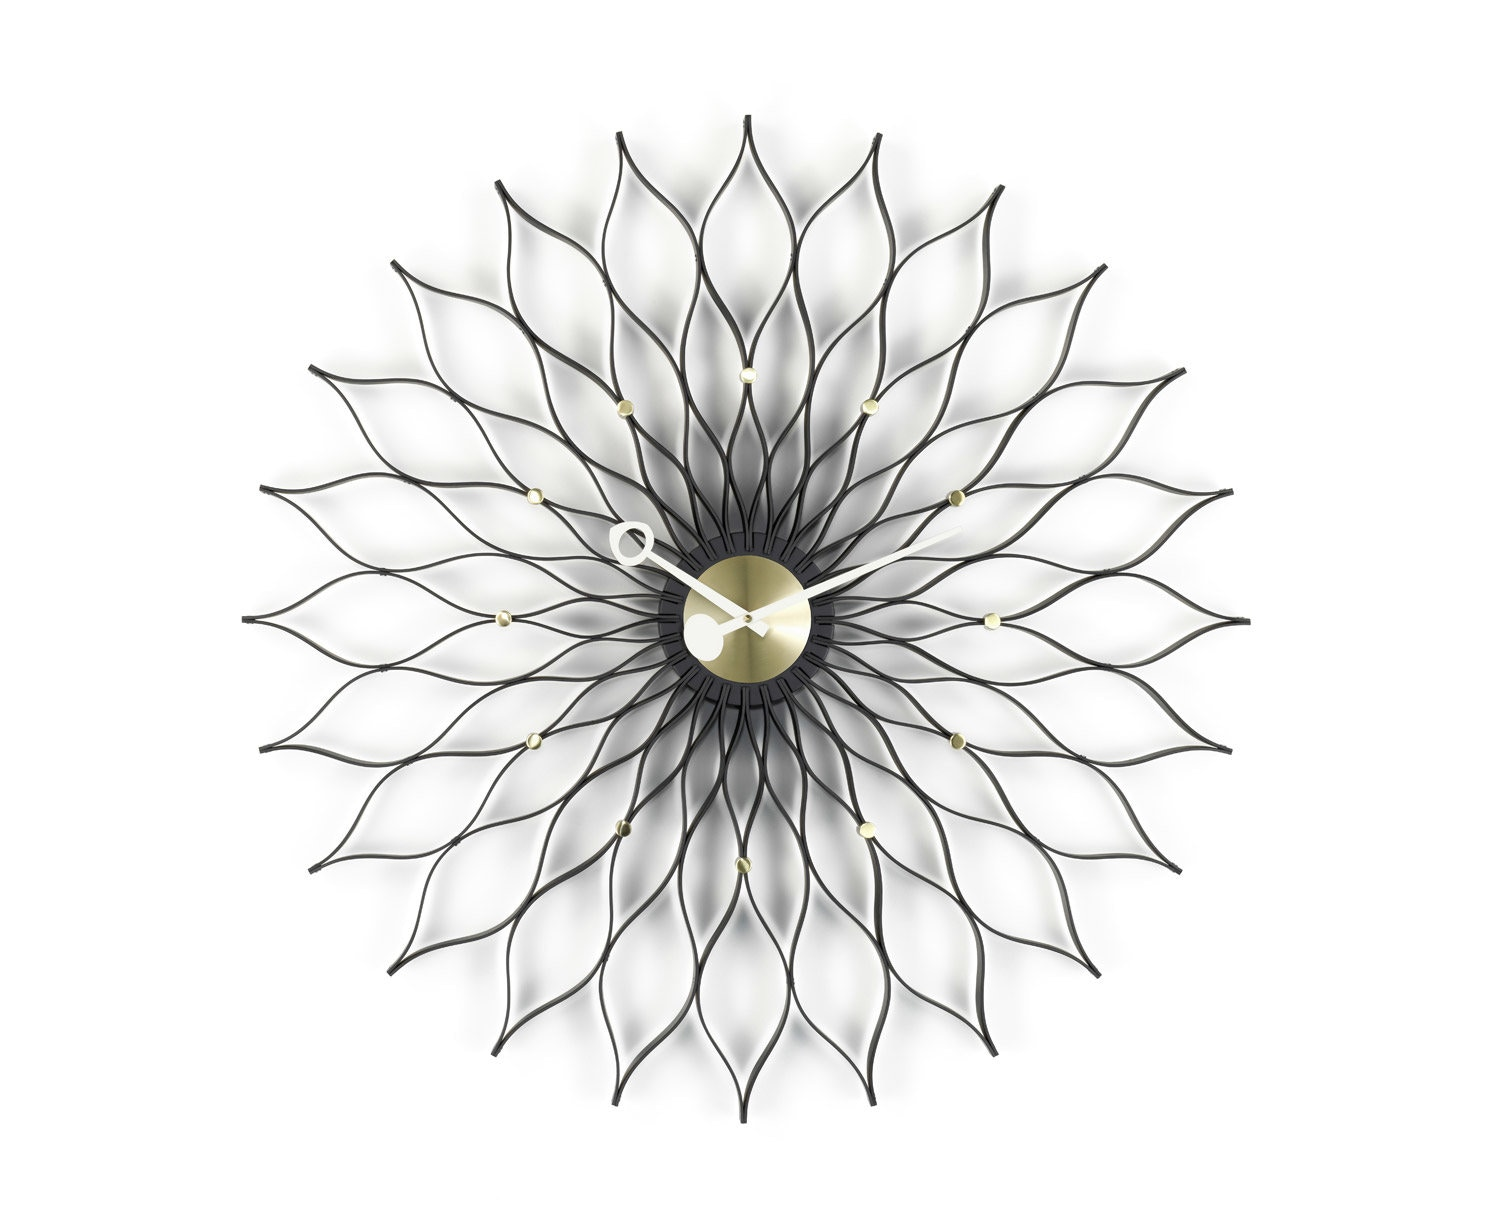 Vitra - Sunflower Clock - frêne noir - 2